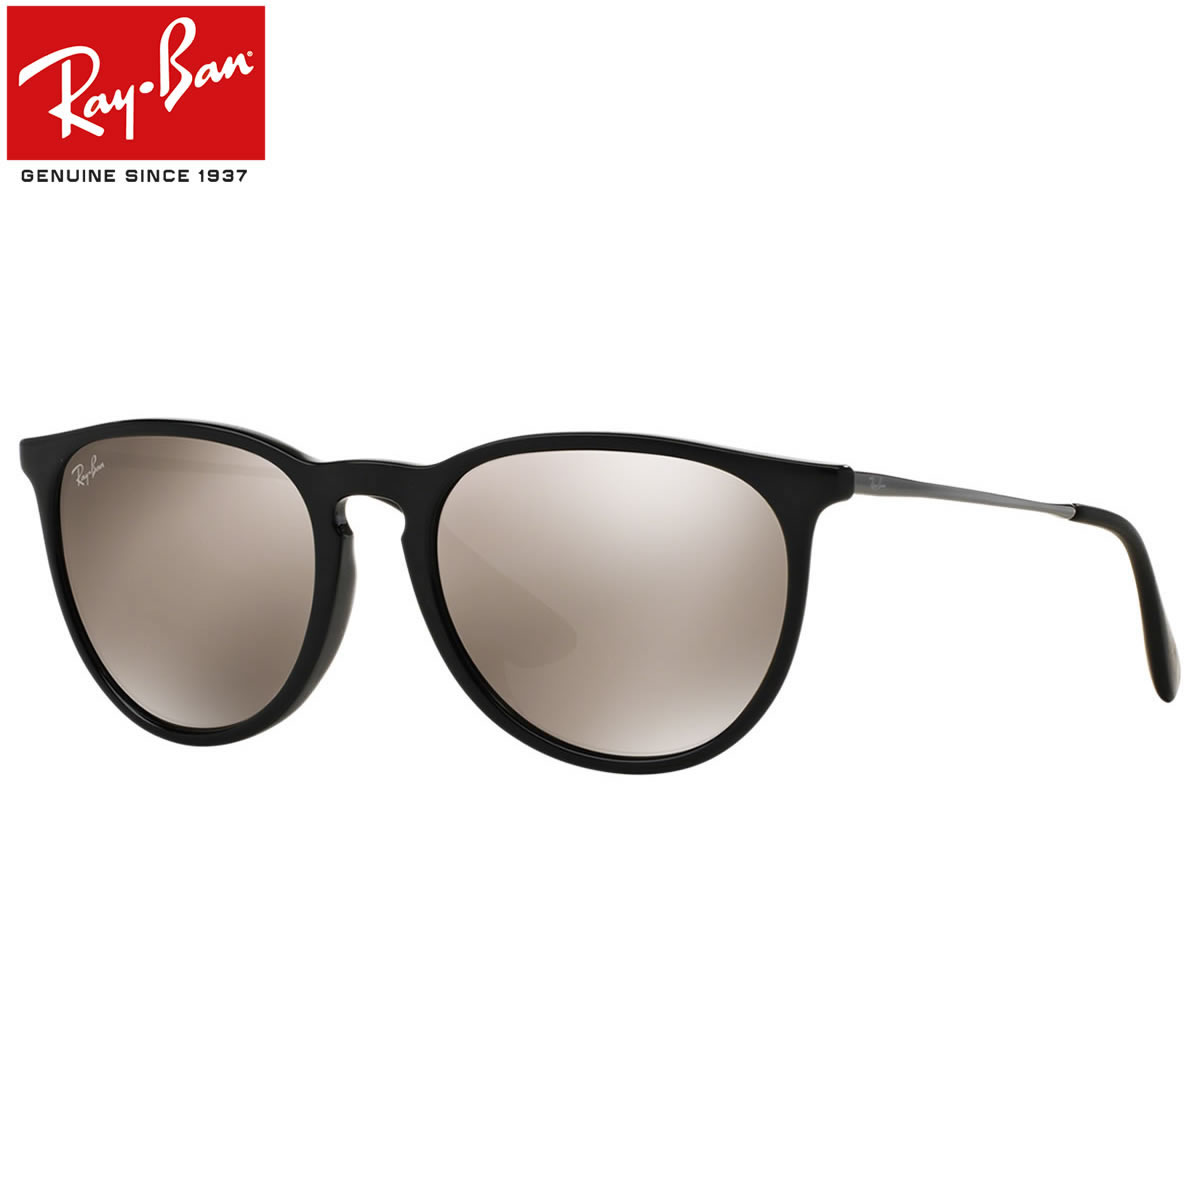 d303e7ec16 Optical Shop Thats  Ray-Ban Sunglasses RB4171F 601 5A 57size ERIKA ...